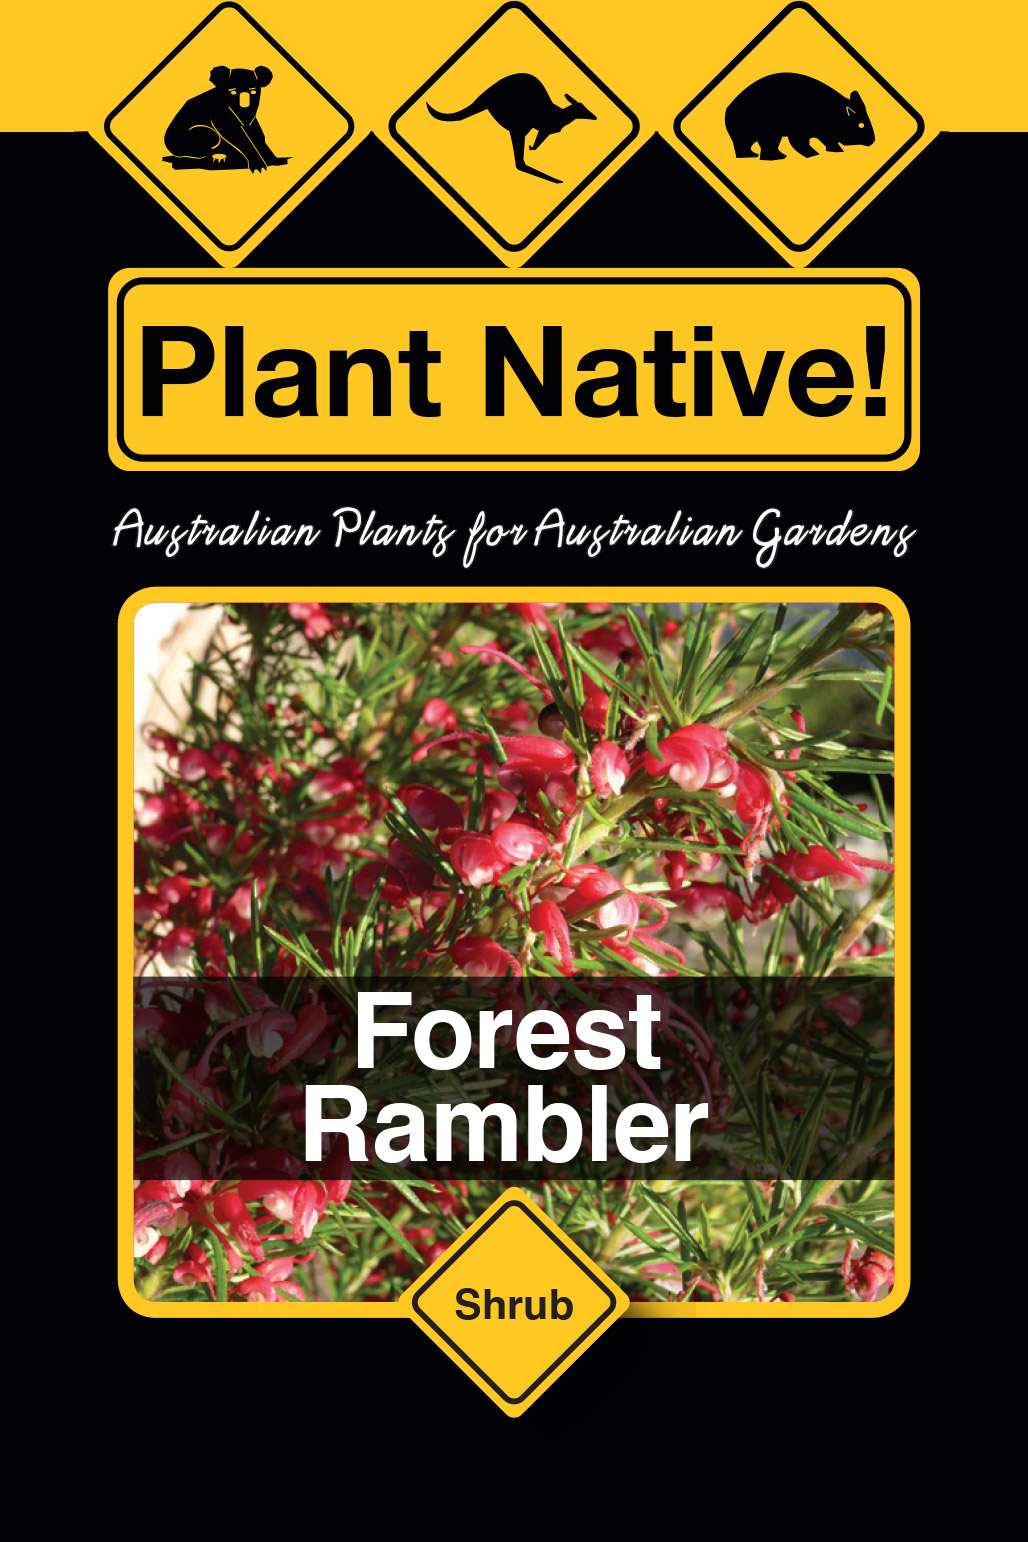 Forest  Rambler - Plant Native!